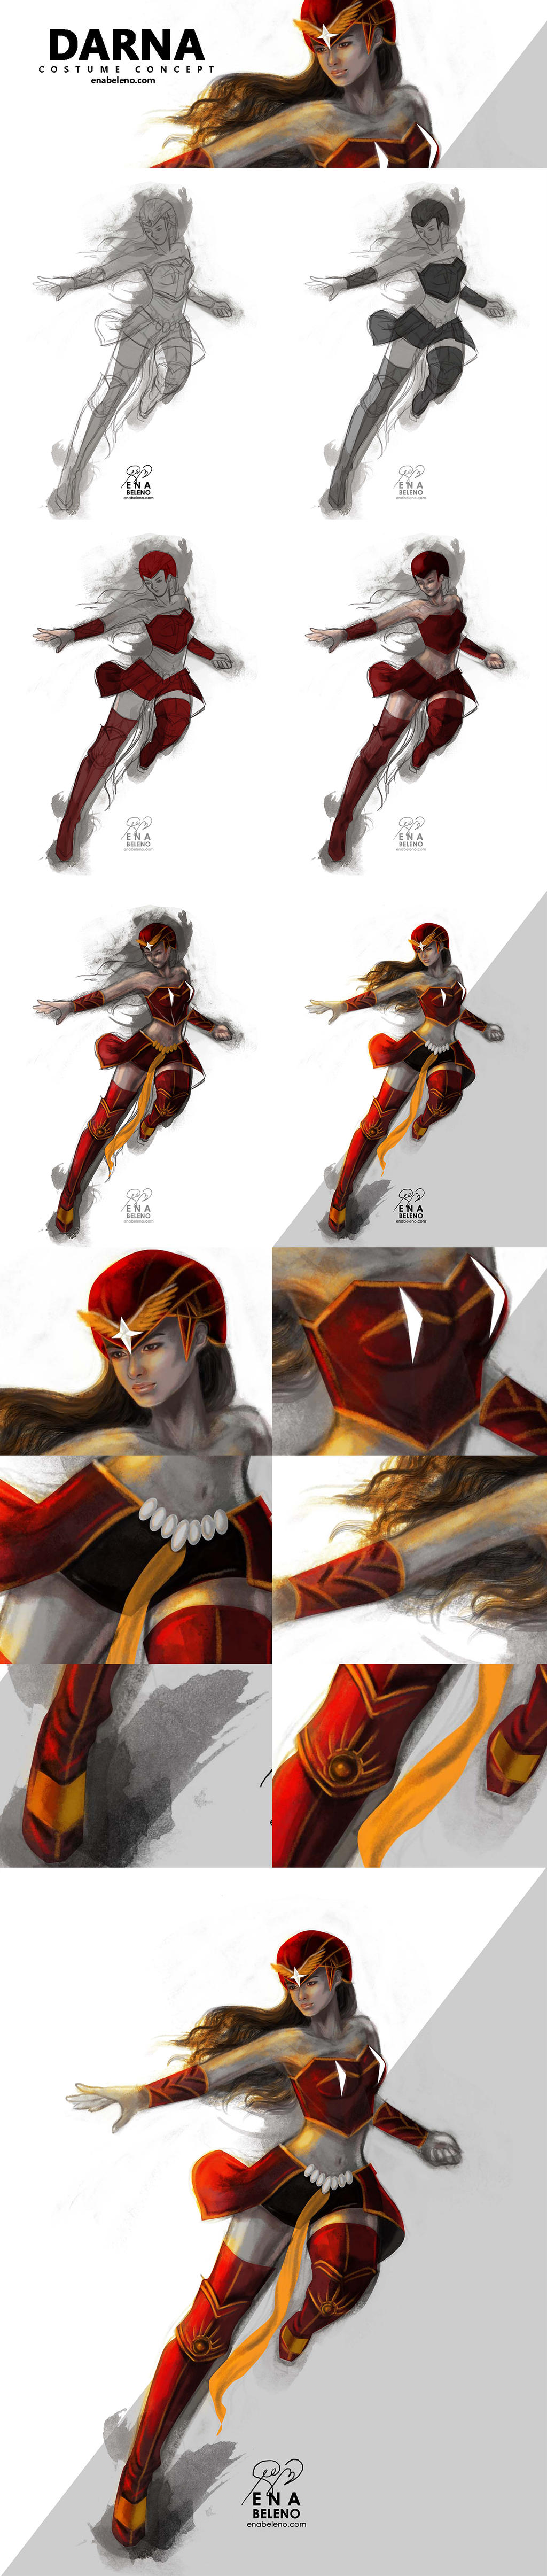 DARNA Costume  Concept Digital Painting Tutorial by enabeleno